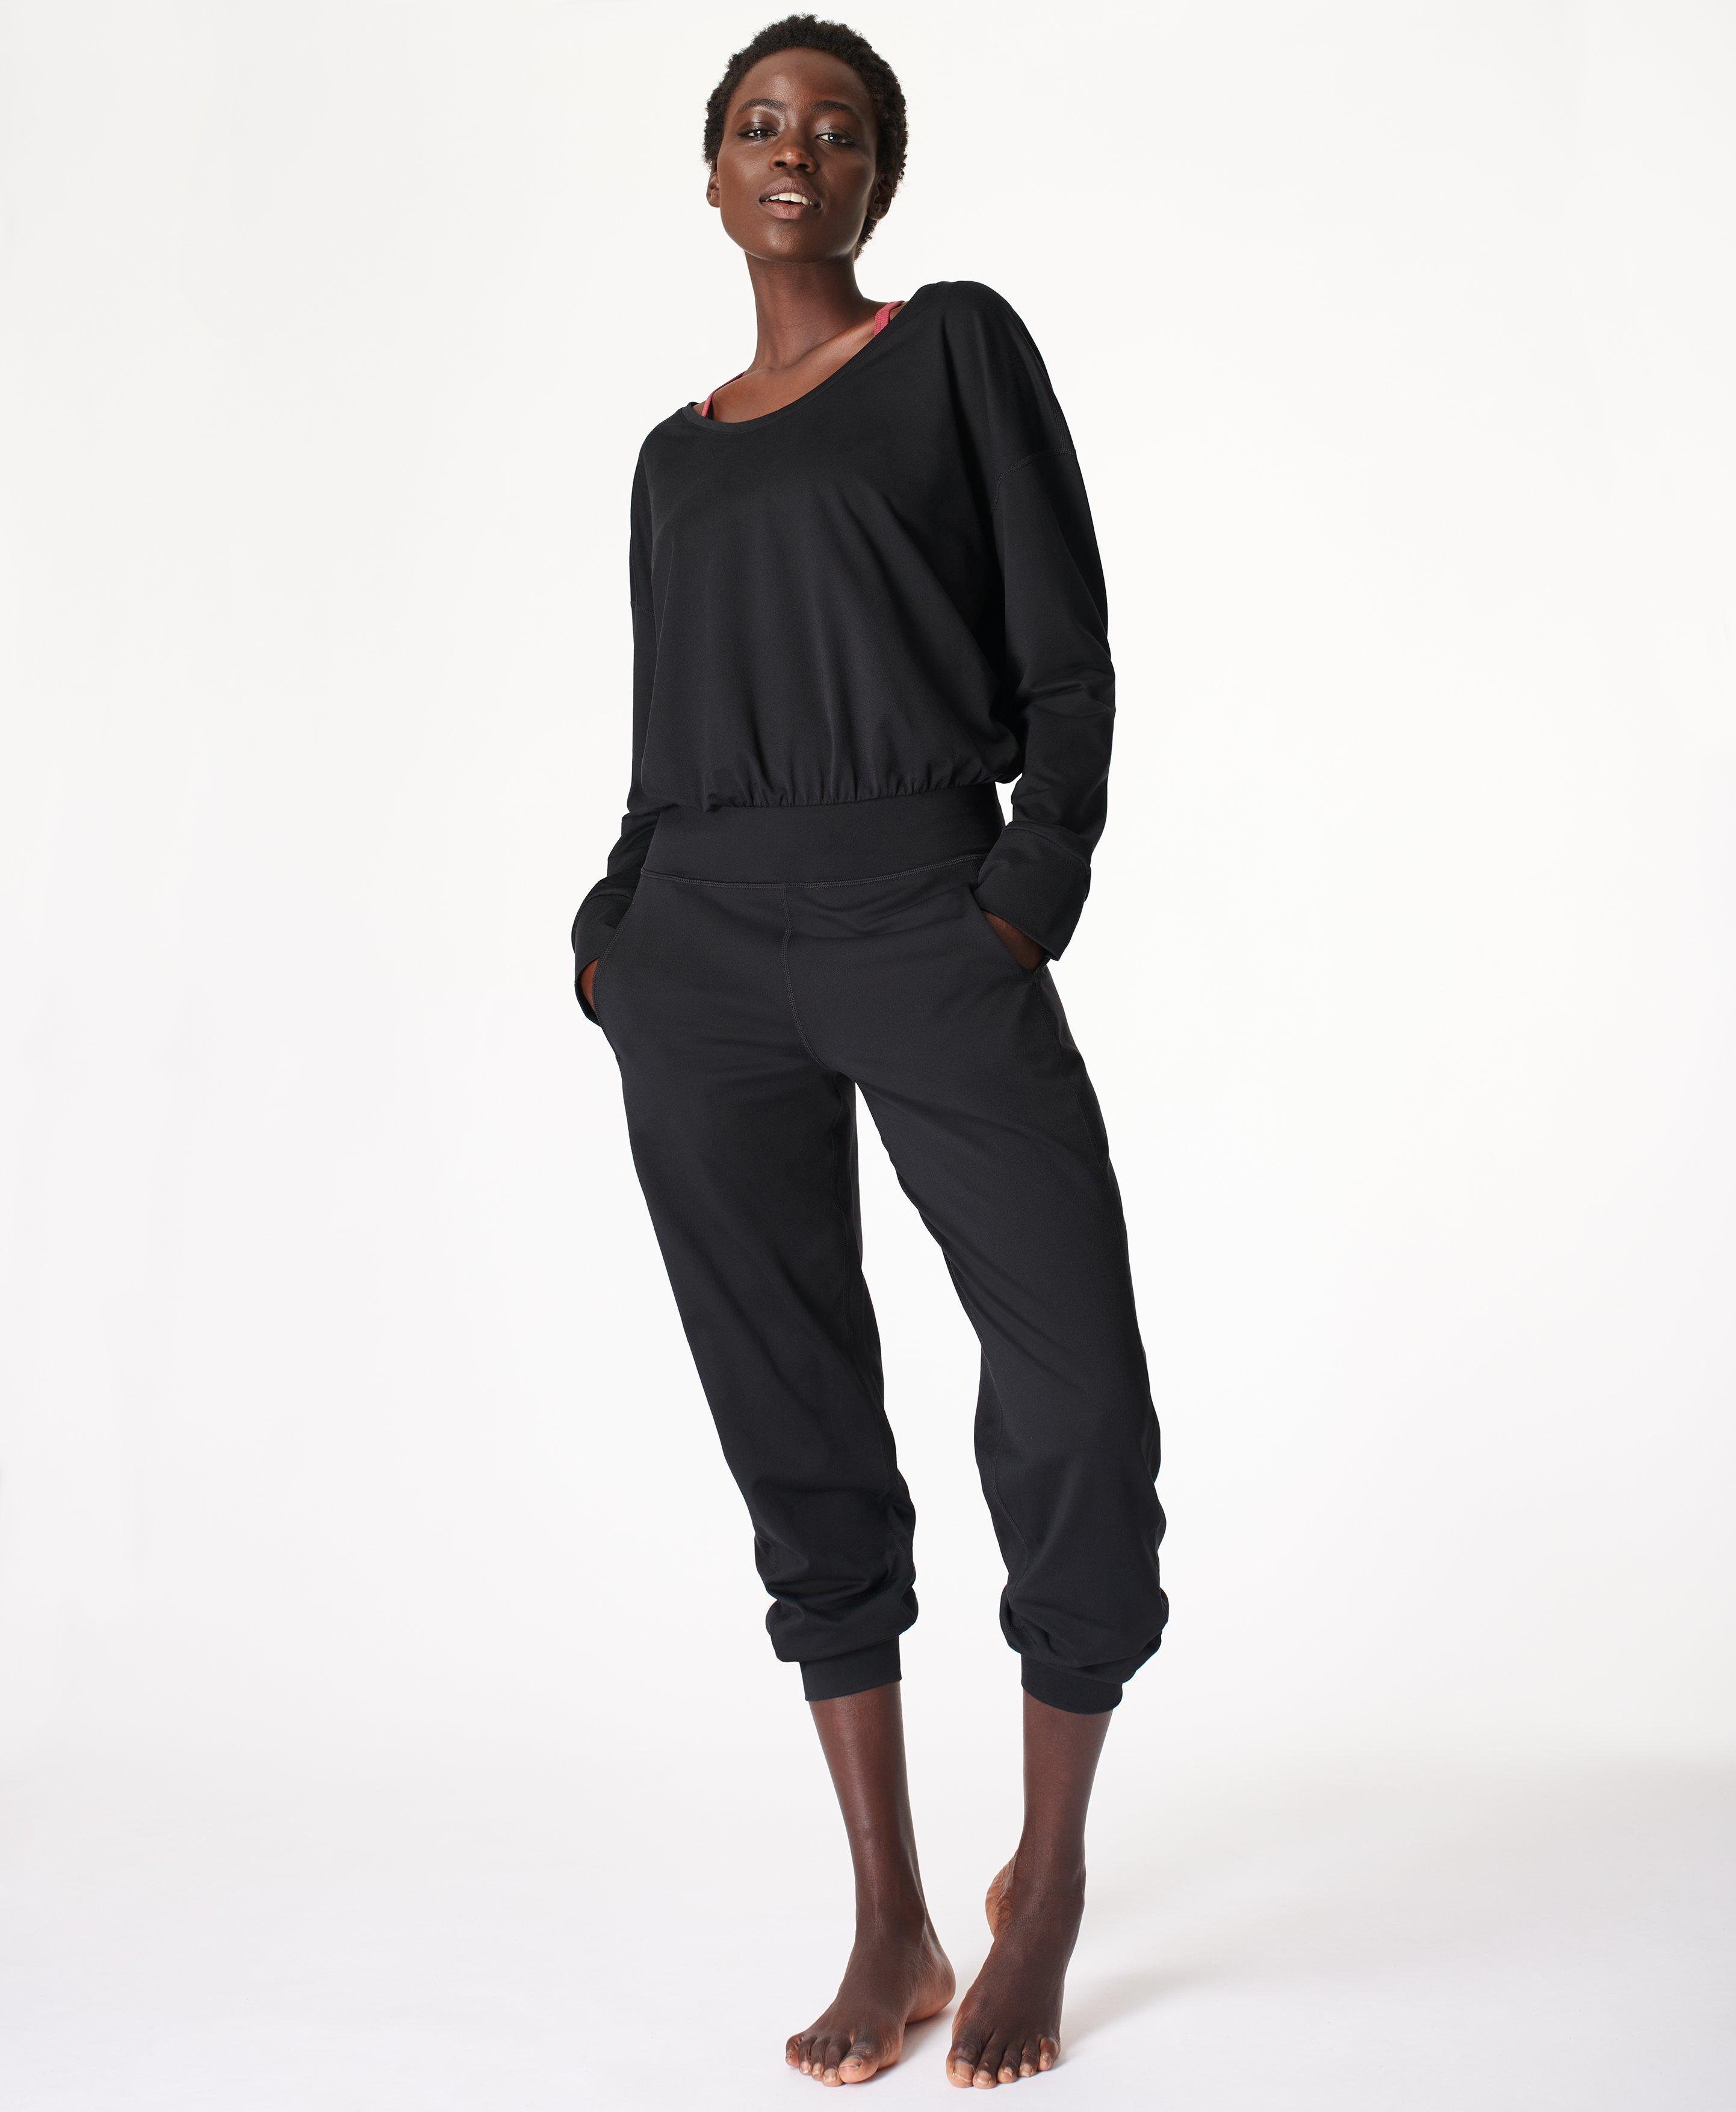 Everyone\\\'s favorite Gary Jumpsuit, now with long sleeves for cooler days. In our famous hero fabric, this is lightweight, soft as a cloud with a flattering scoop neck, flat fitted waistband and relaxed fitting pants with fitted cuffs. Wear for yoga, Pilates or pyjama level comfort.